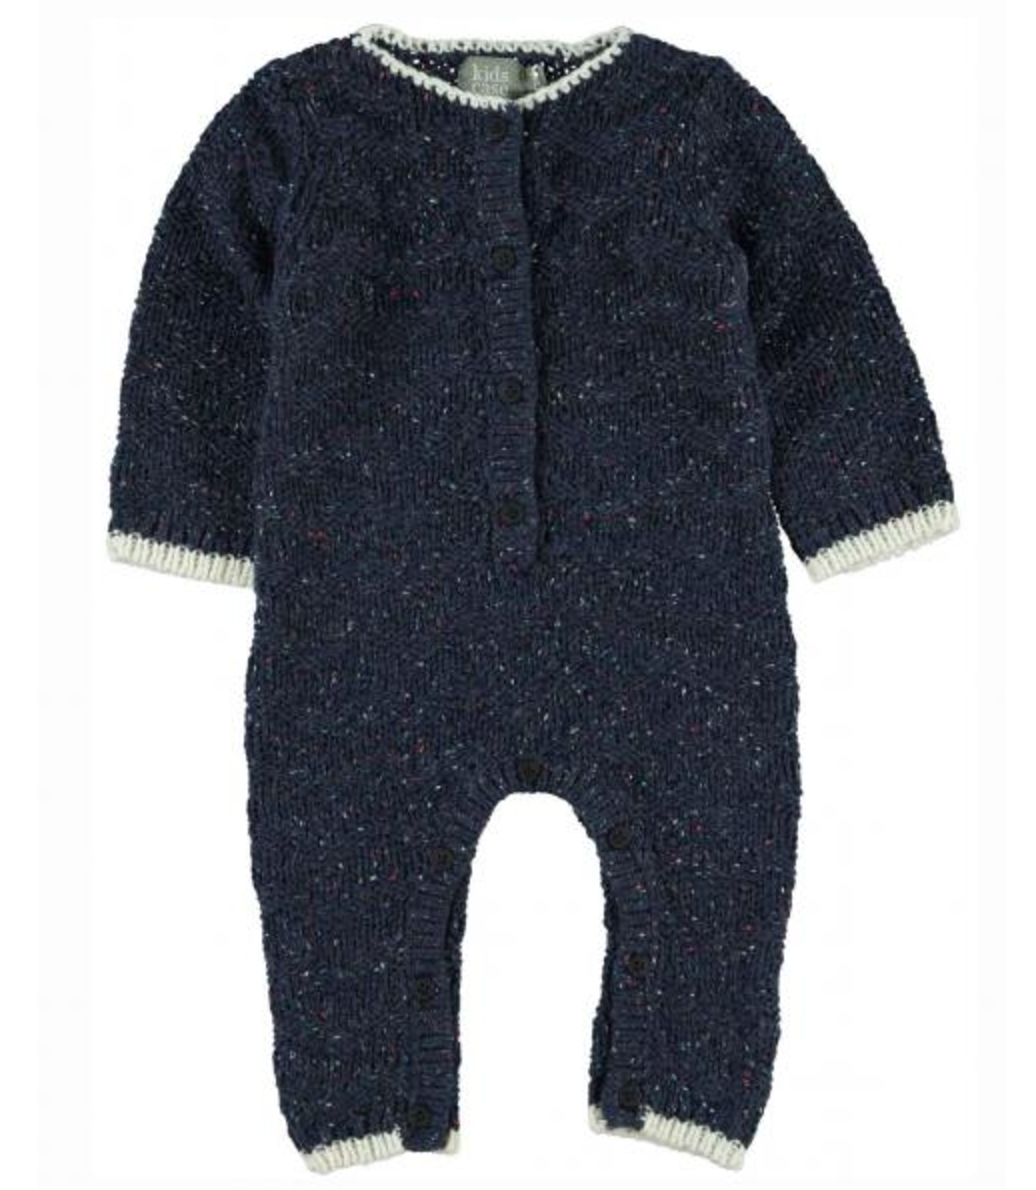 kidscase-nat-suit-dark-blue-59-95